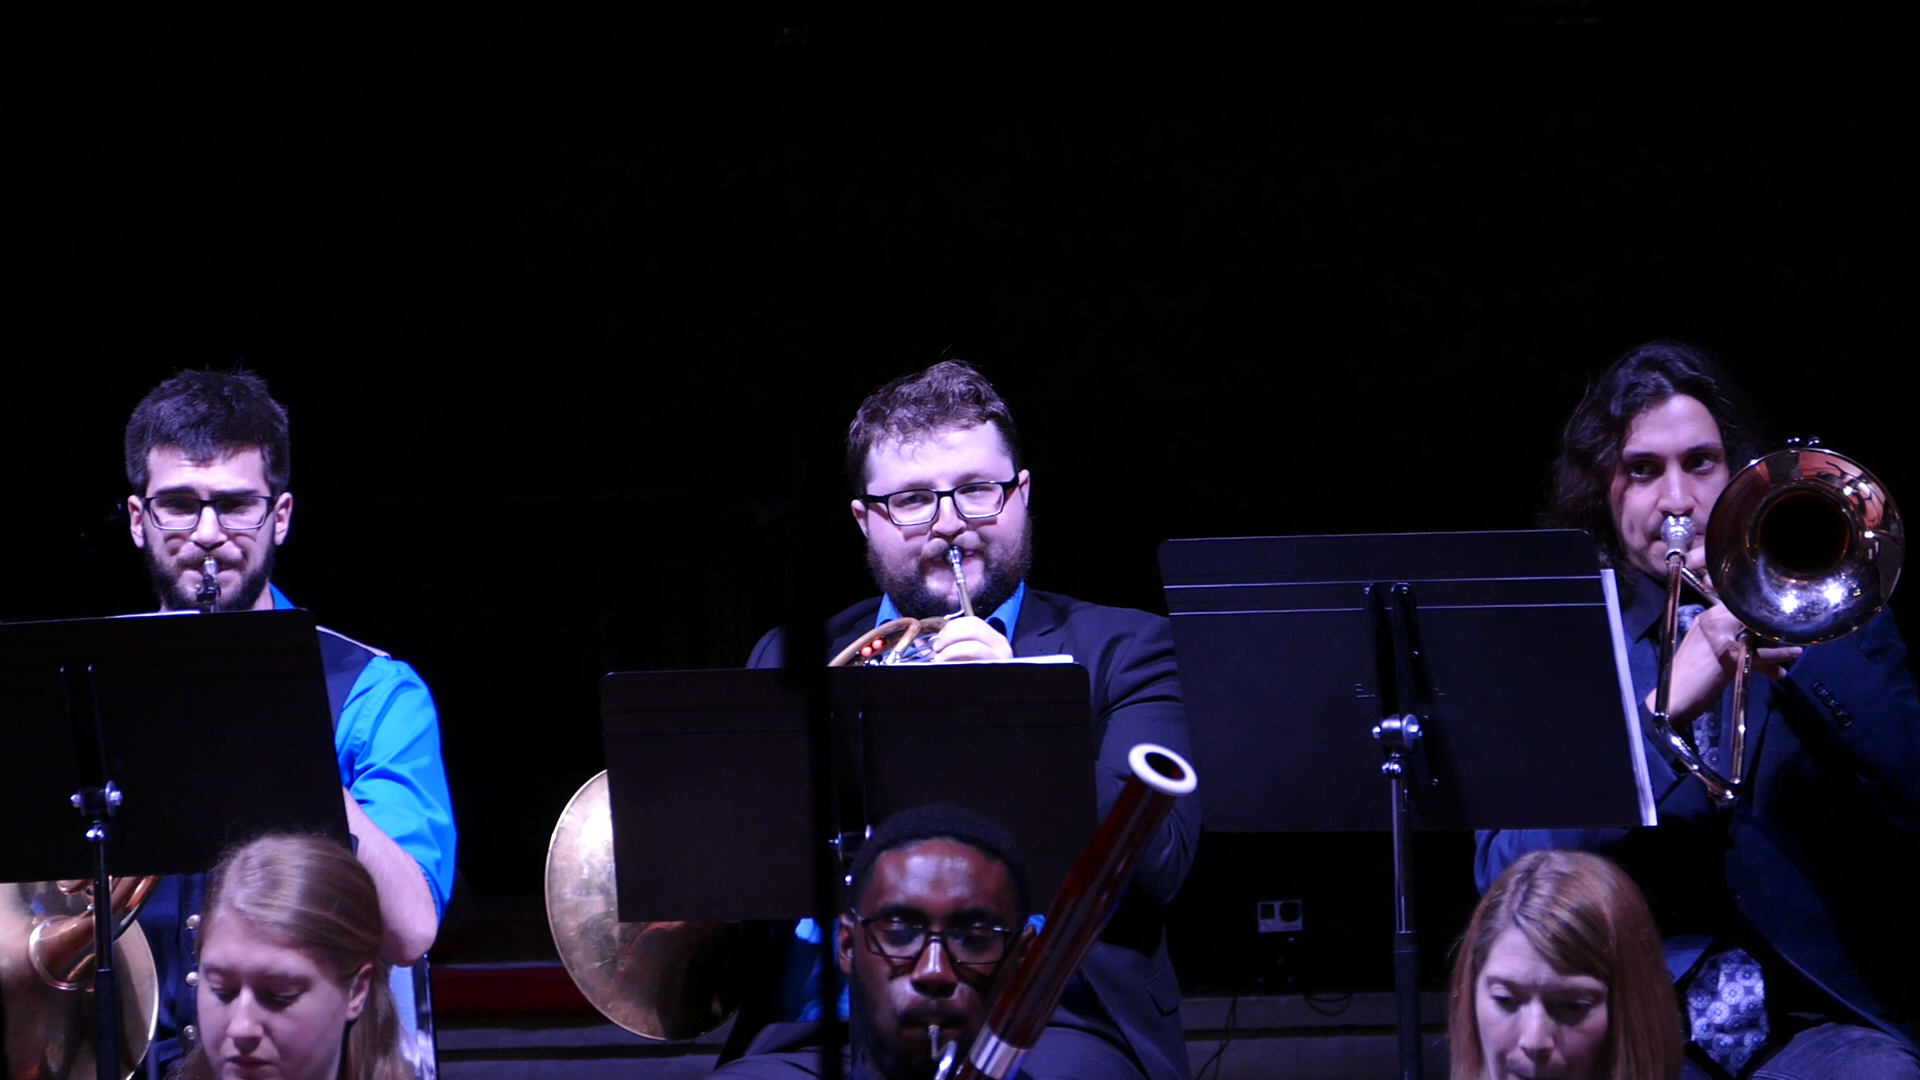 Current and former Principal Hornist Scott Ullman and Kelso Jones (respectively) perform with guest artist Gabriel Luciano and the woodwinds of Symphony Number One.